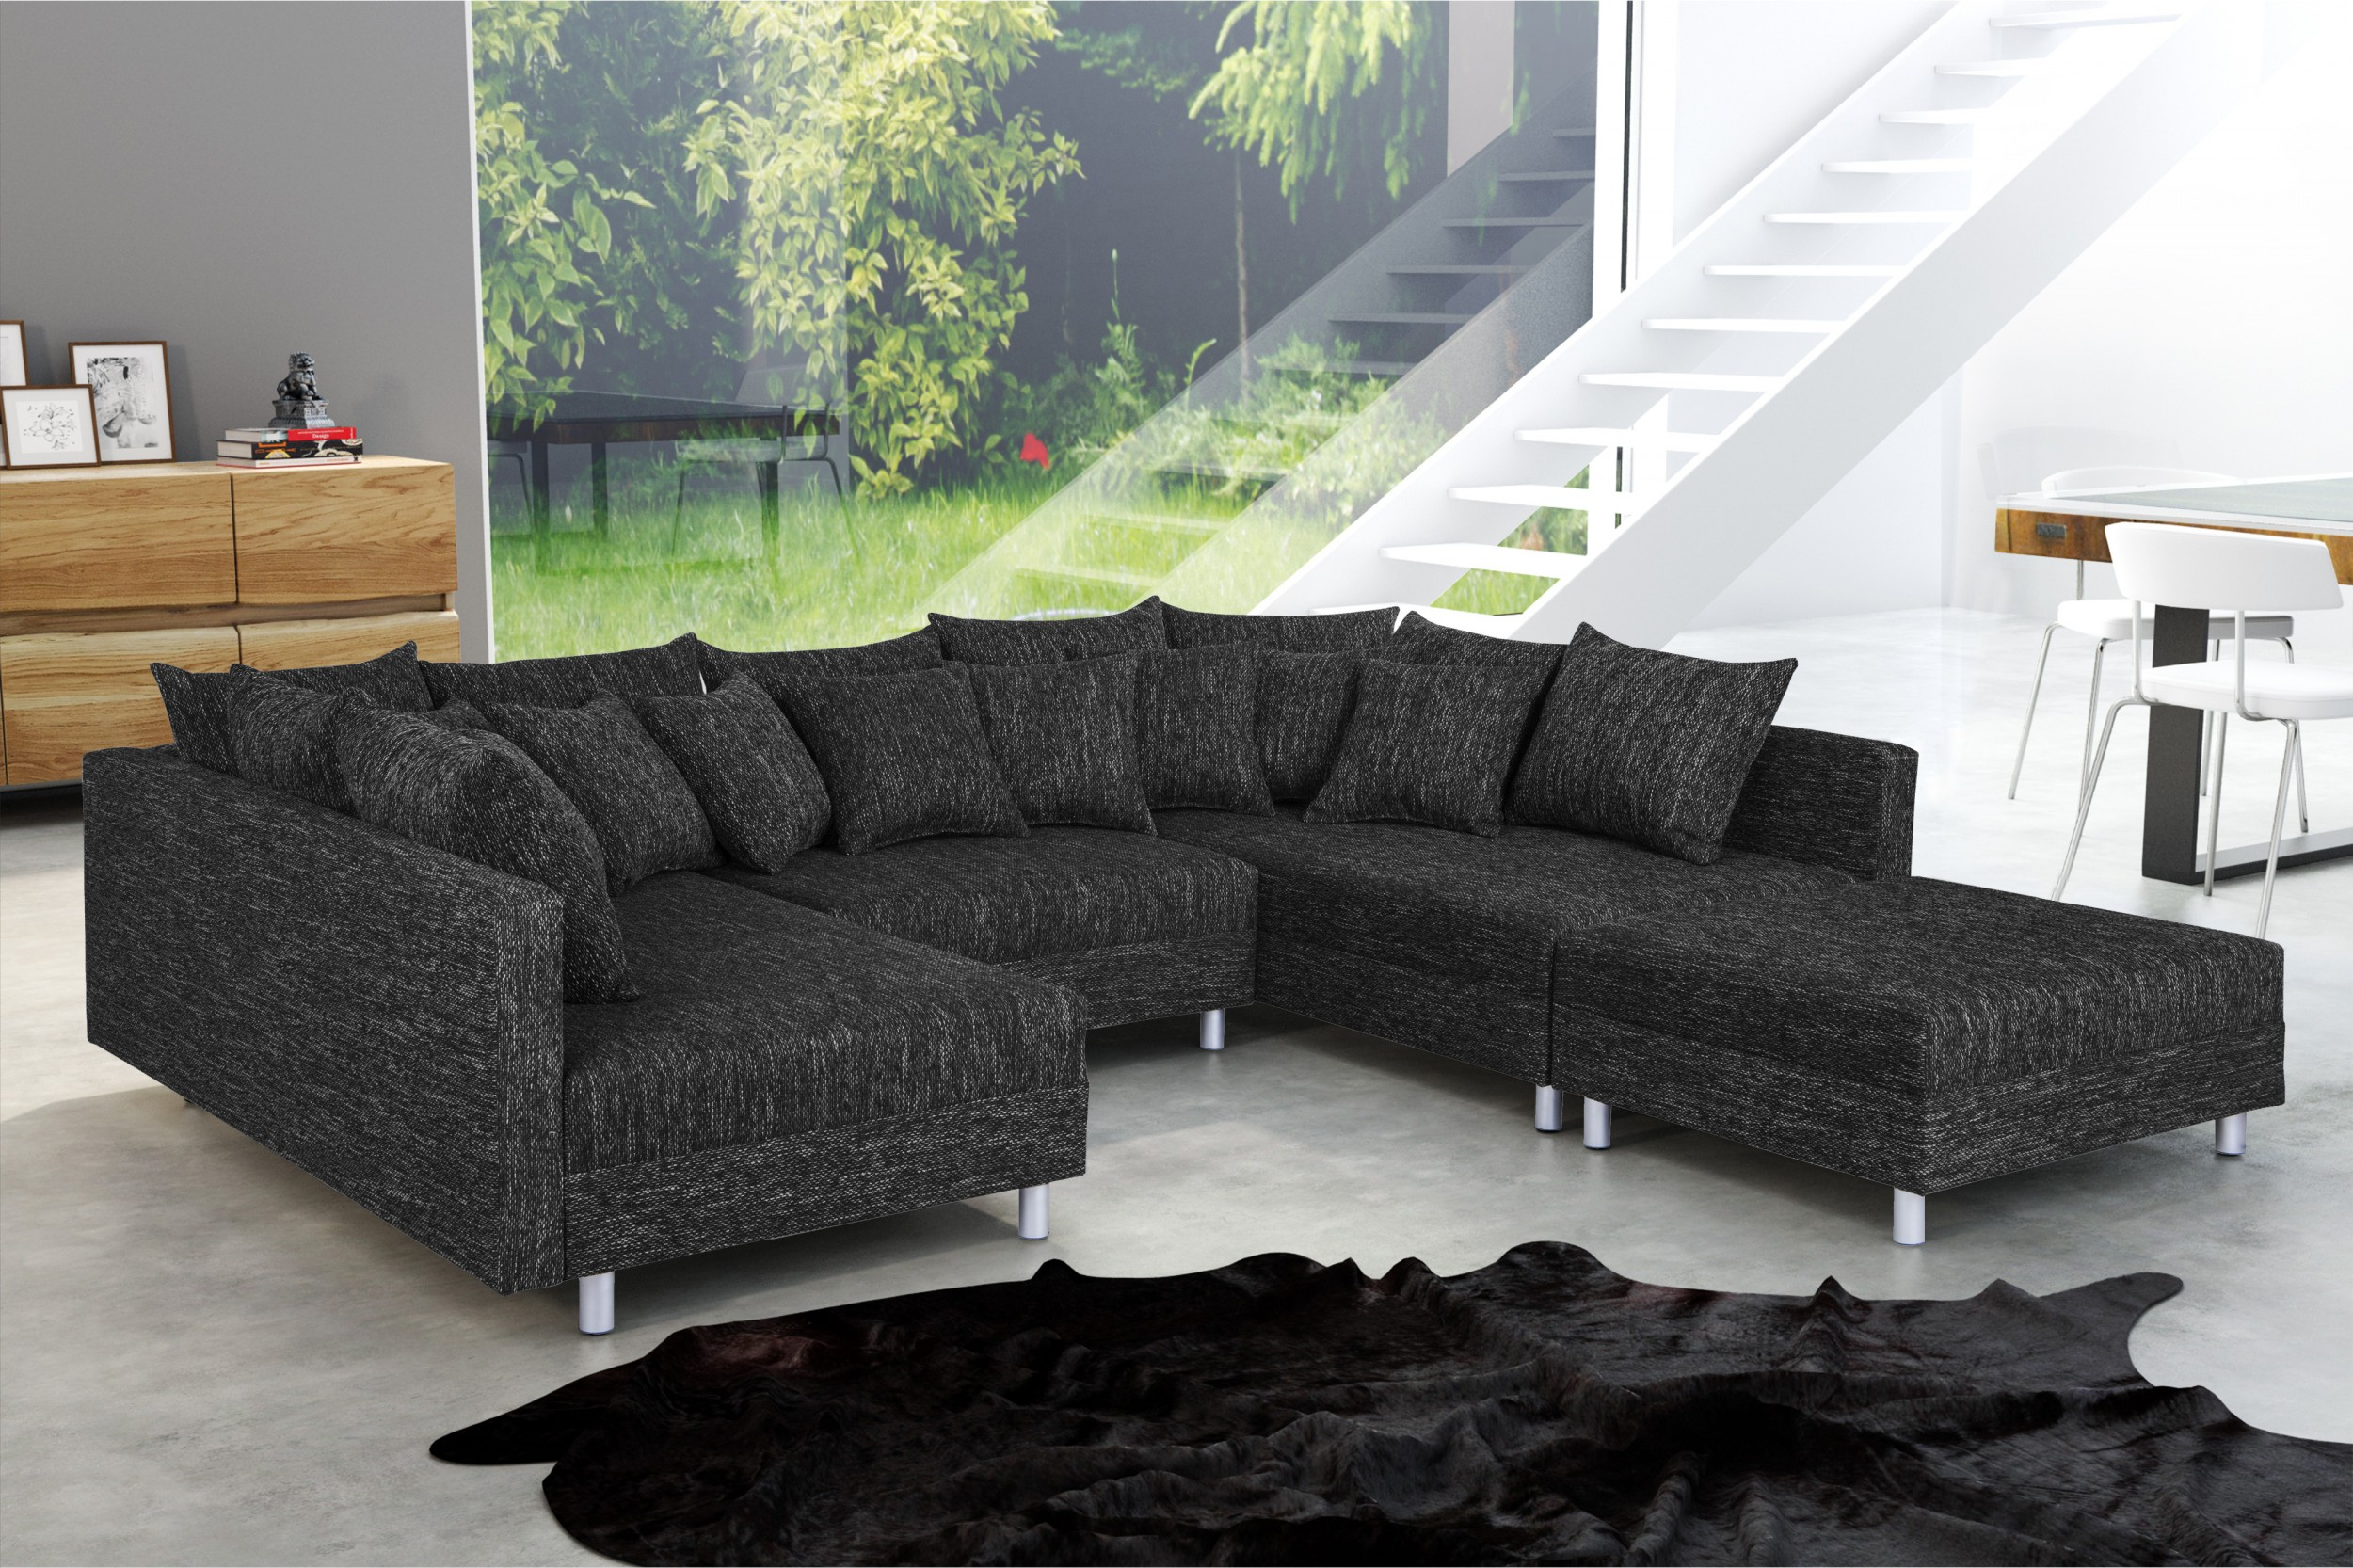 wohnlandschaft sofa couch ecksofa eckcouch in gewebestoff schwarz minsk xxl ebay. Black Bedroom Furniture Sets. Home Design Ideas